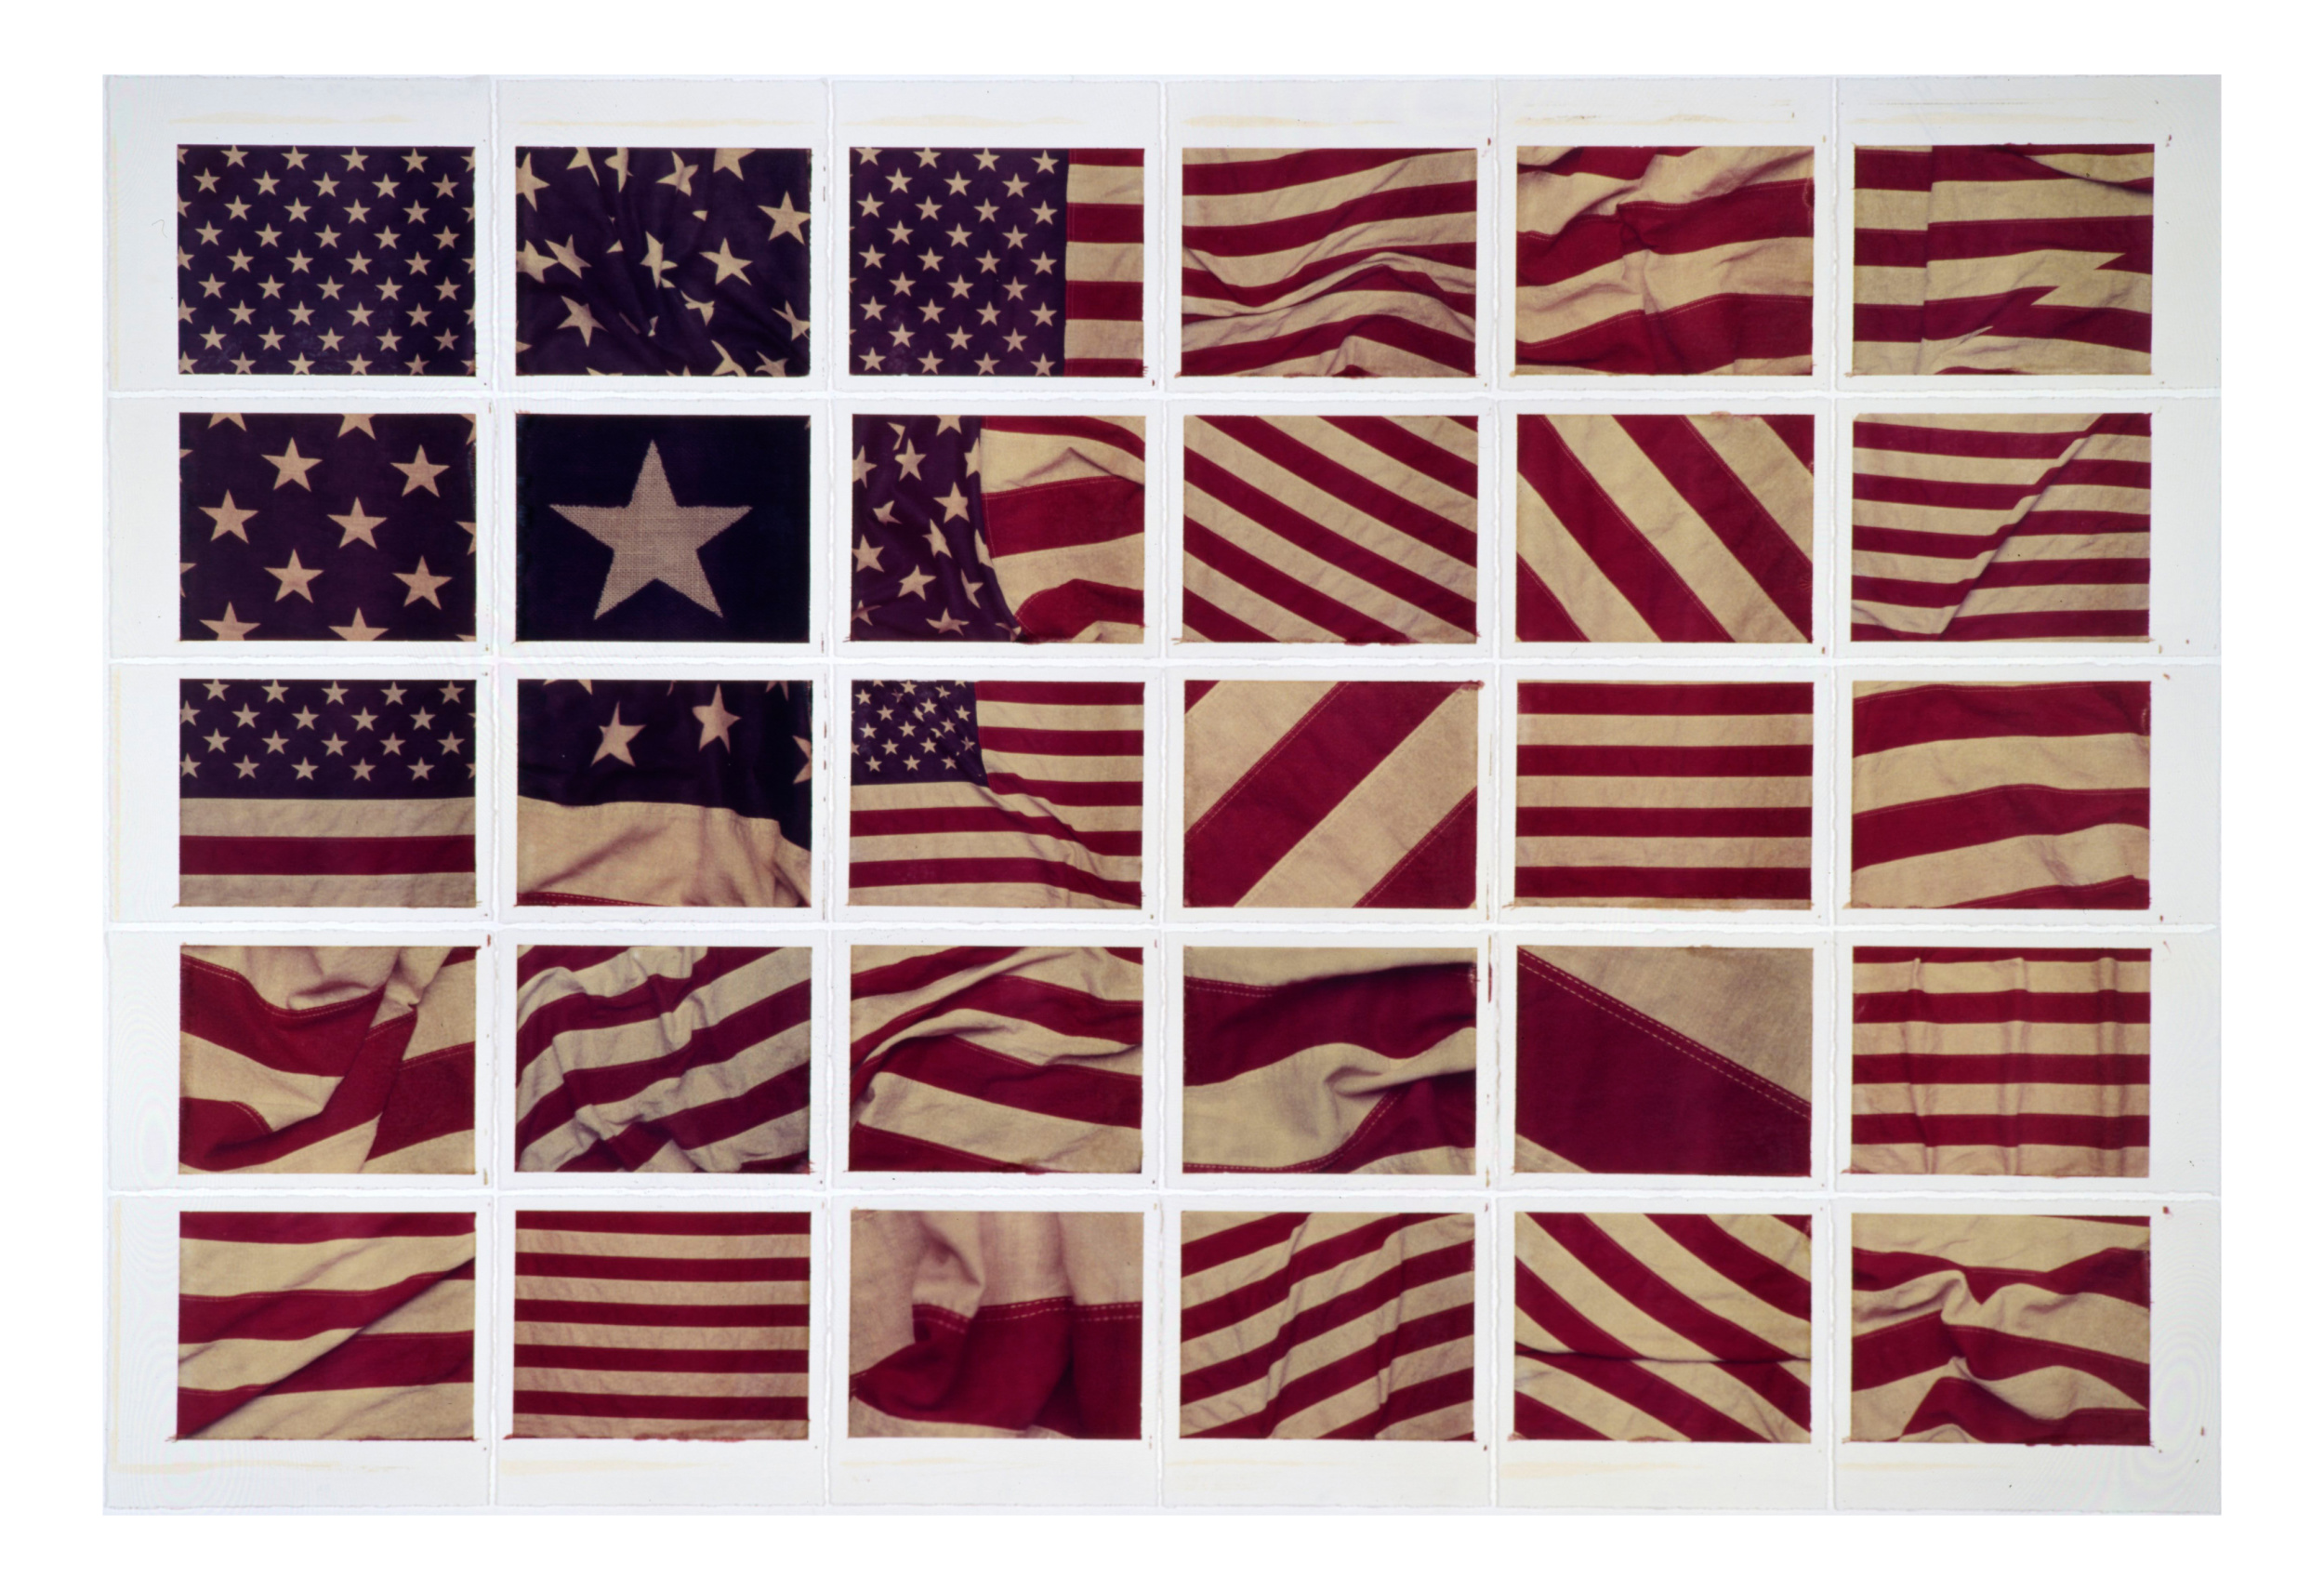 Stars and Stripes #6, 2006